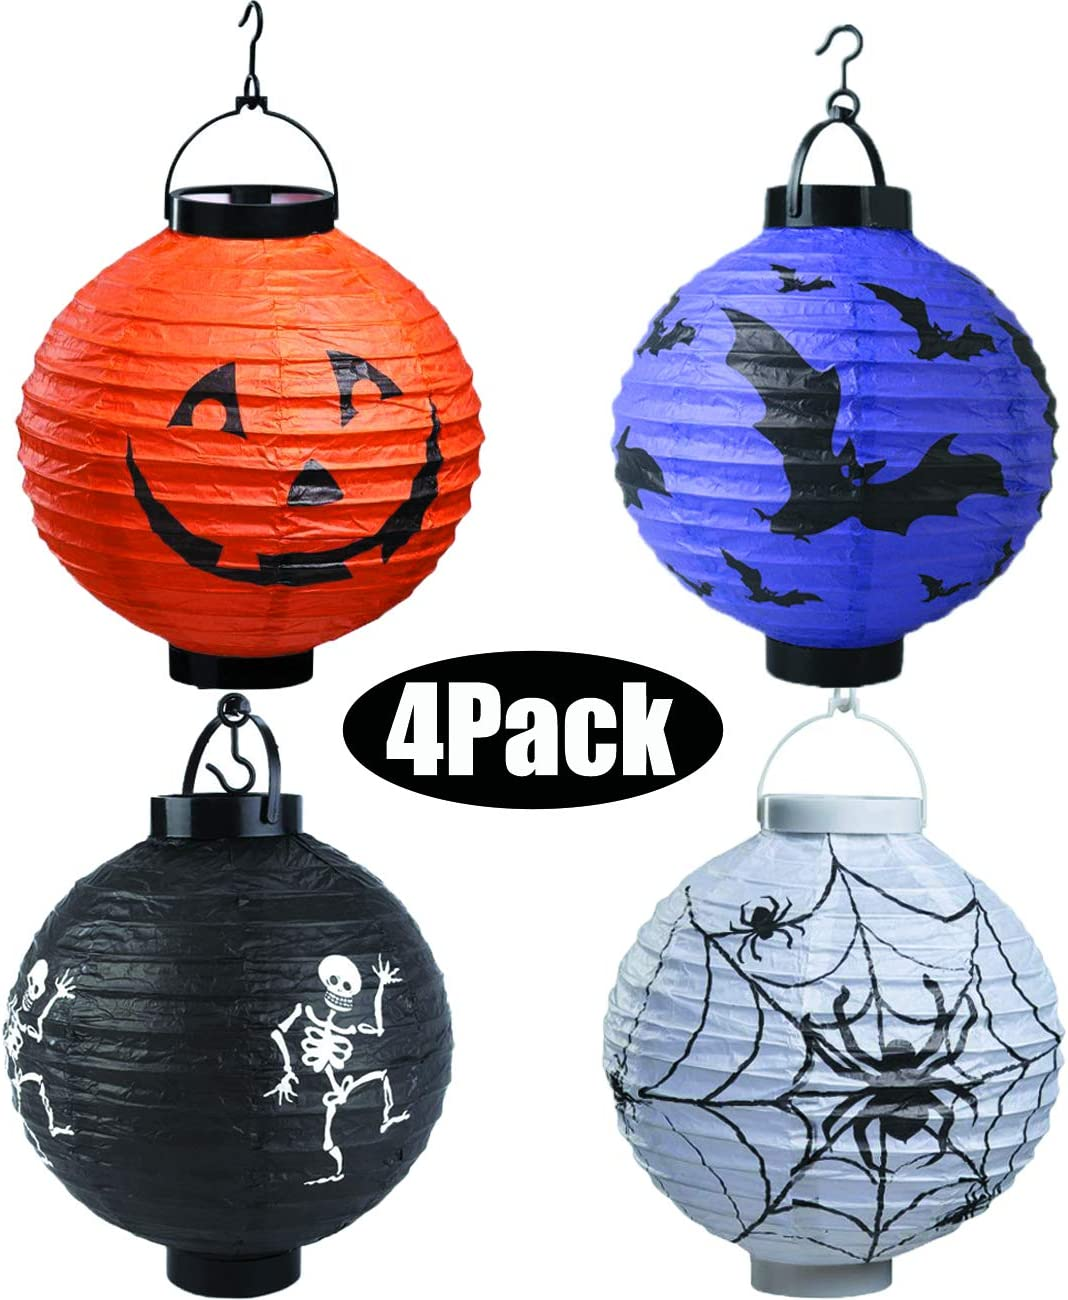 Bimkole 4 Pack Halloween Decorations Paper Lantern with Spider Skull Skeleton Bat Pumpkin Smiley for Home Garden Outdoor Yard Hanging Party Decors Supplies 7.8 Inch